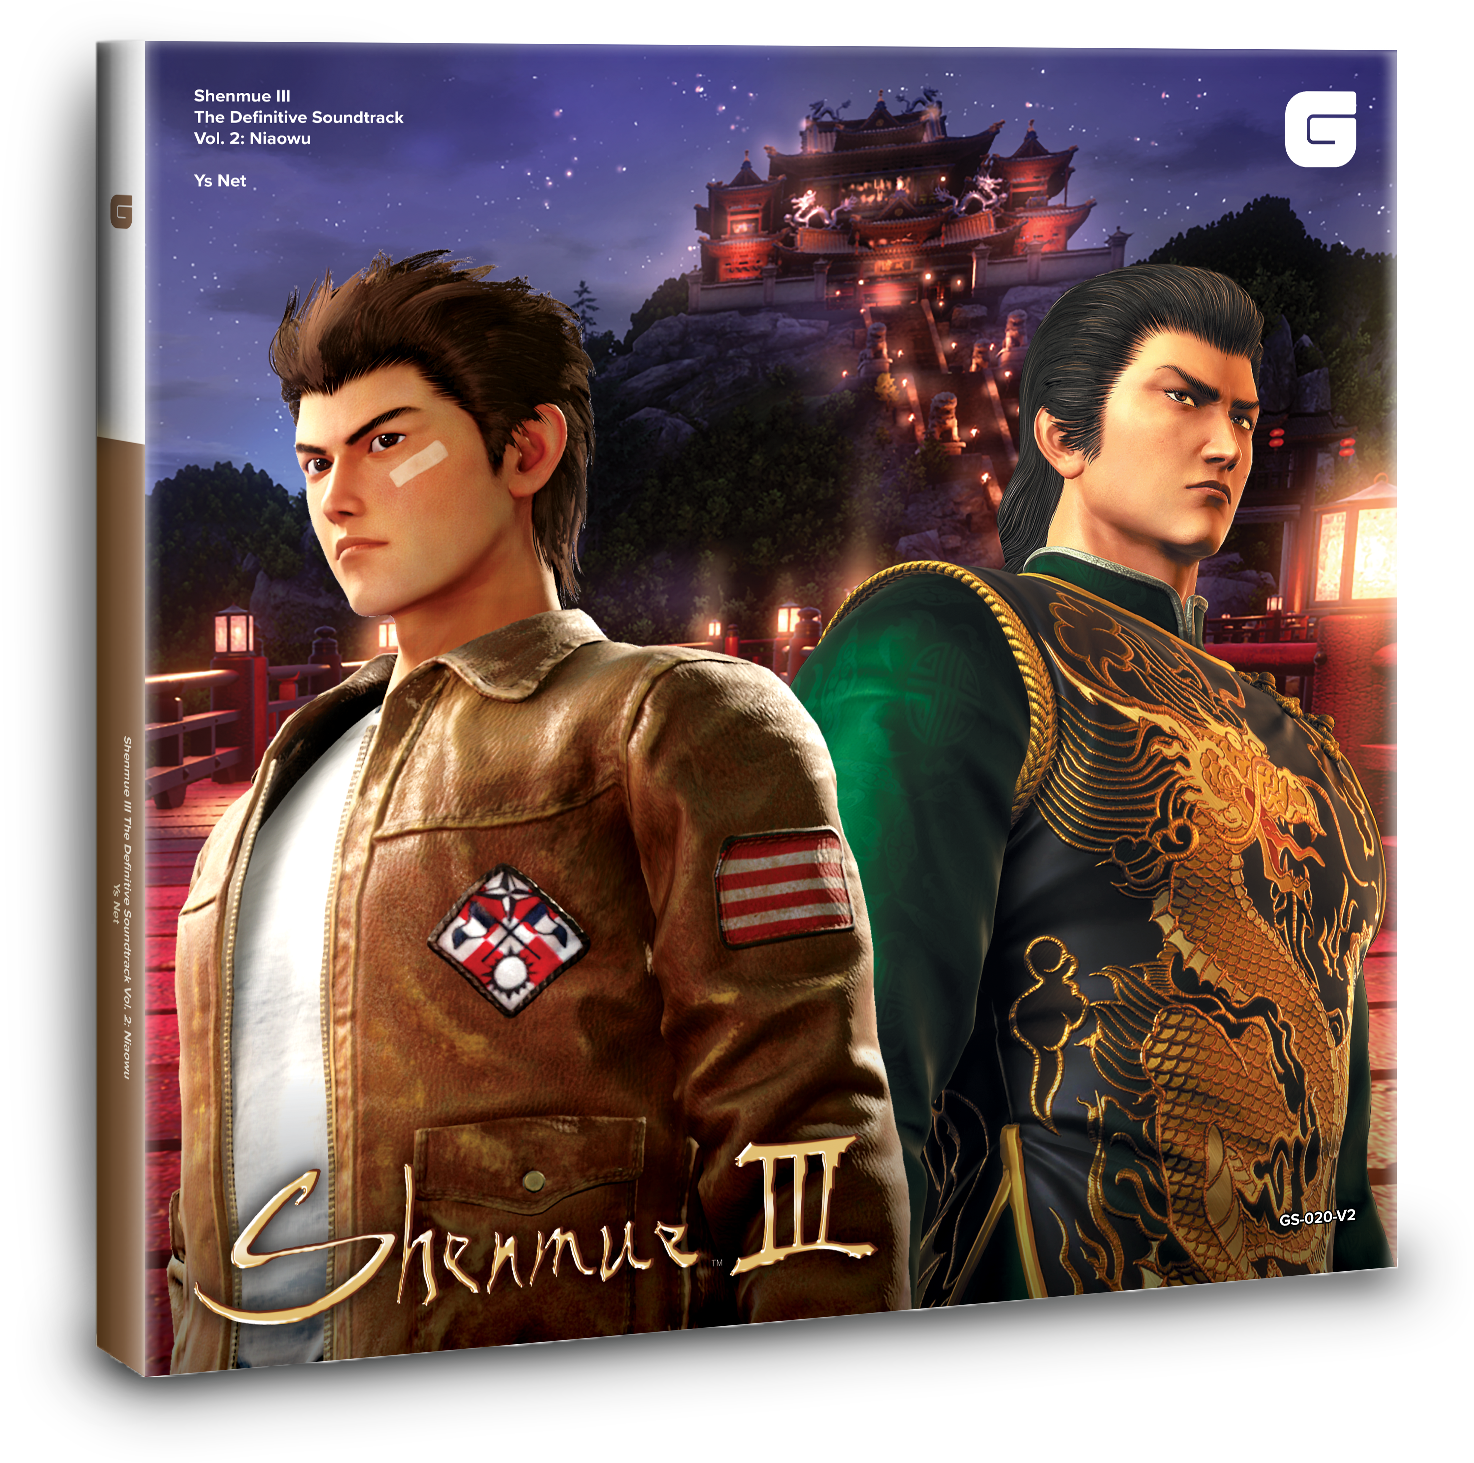 Shenmue III The Definitive Soundtrack Vol. 2: Niaowu (GS-020-V2) Mockup. Artwork is not final and subject to change.